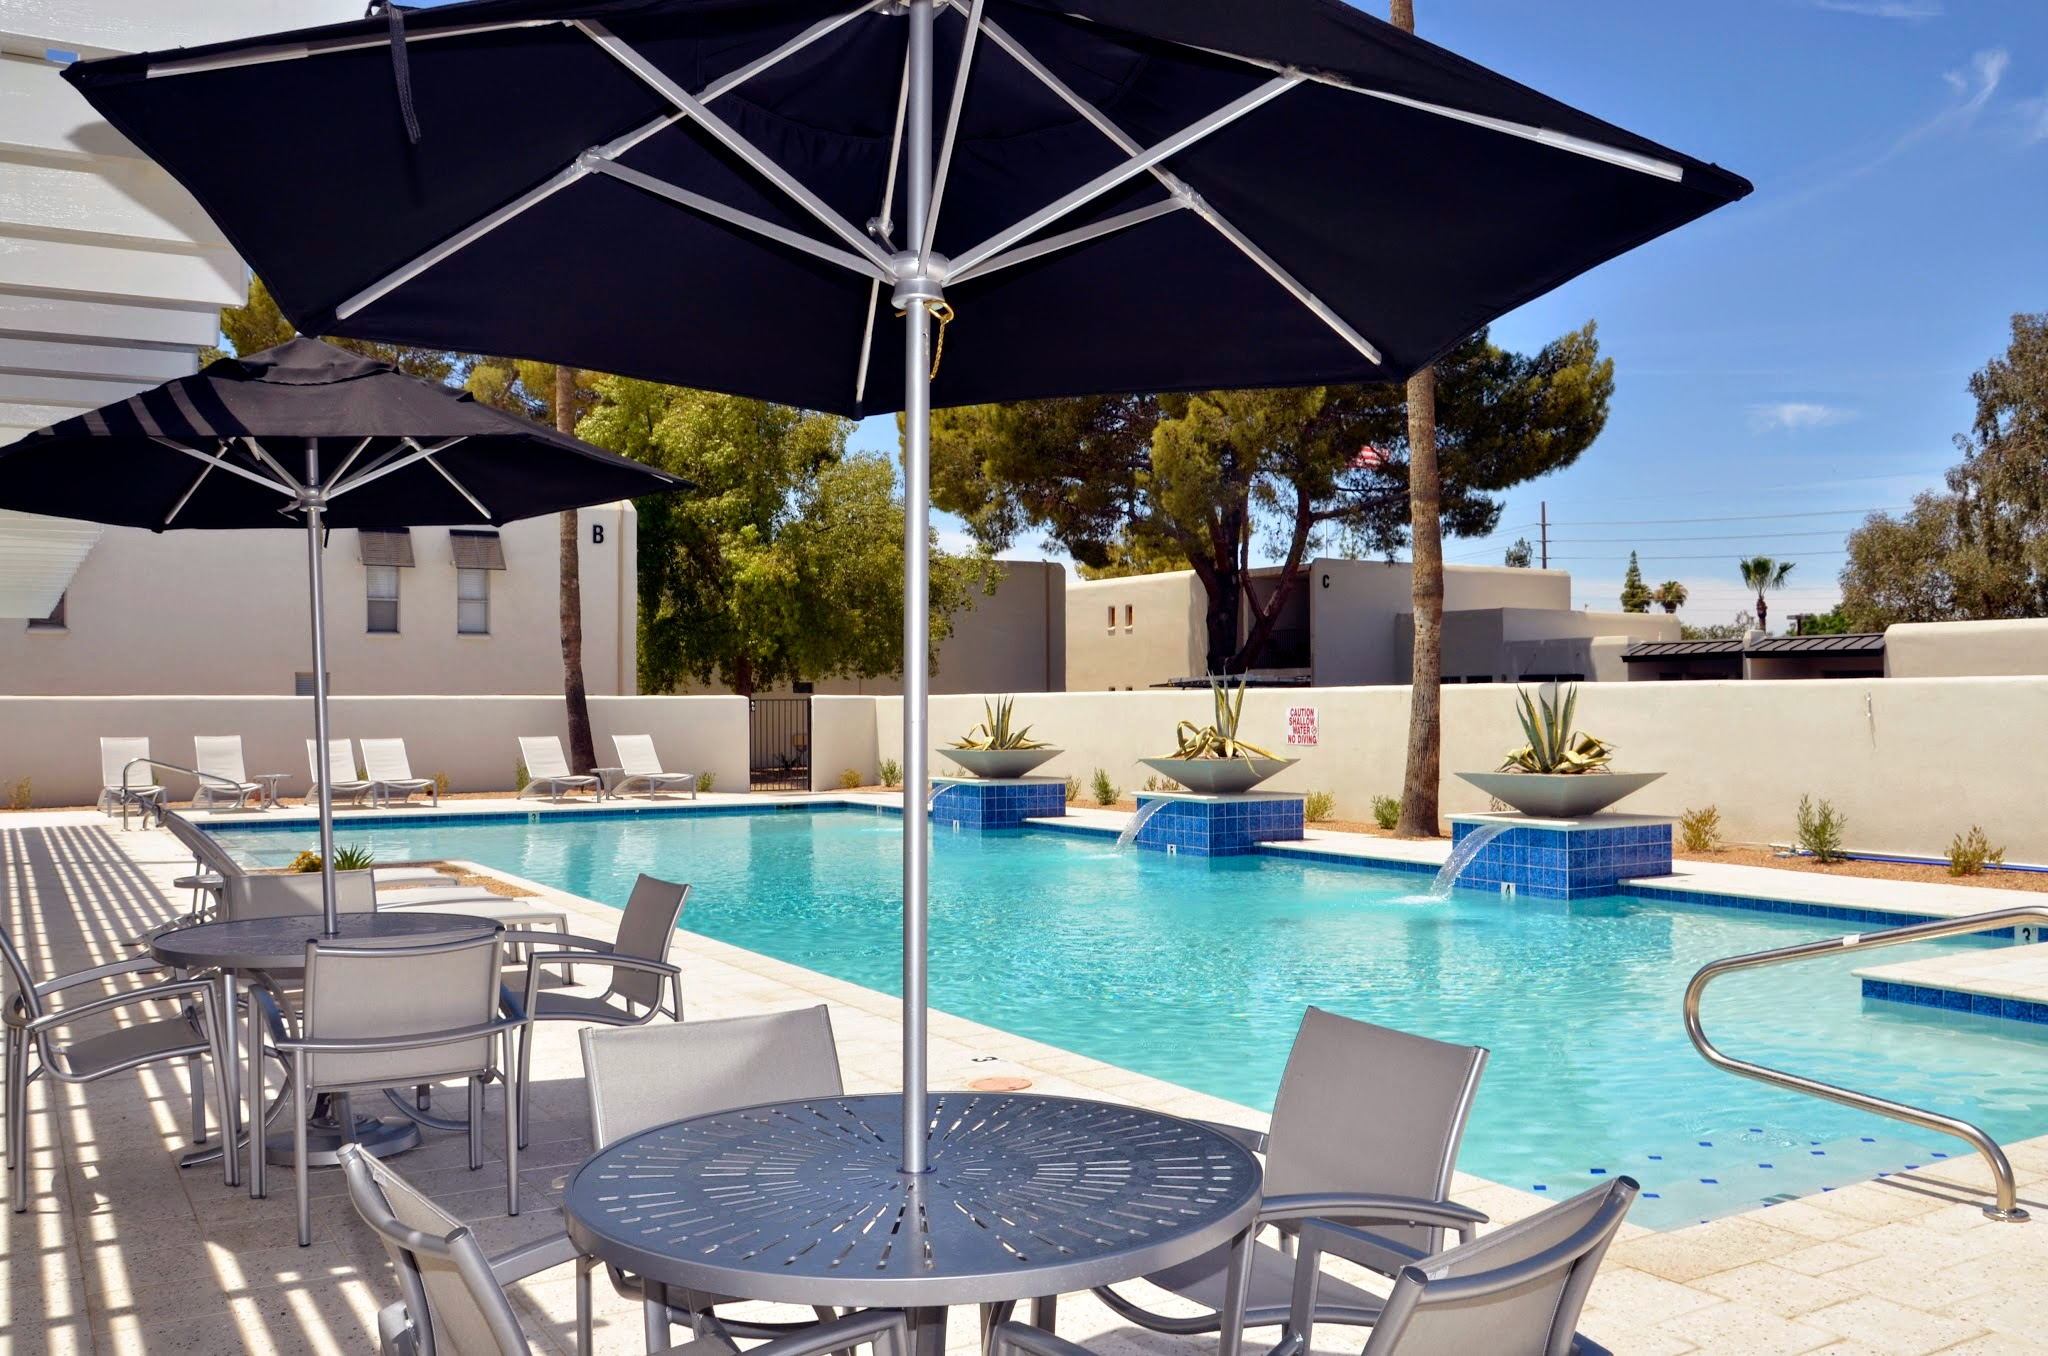 Sparkling Swimming Pool at The Winfield of Scottsdale Apartments in Scottsdale, Arizona